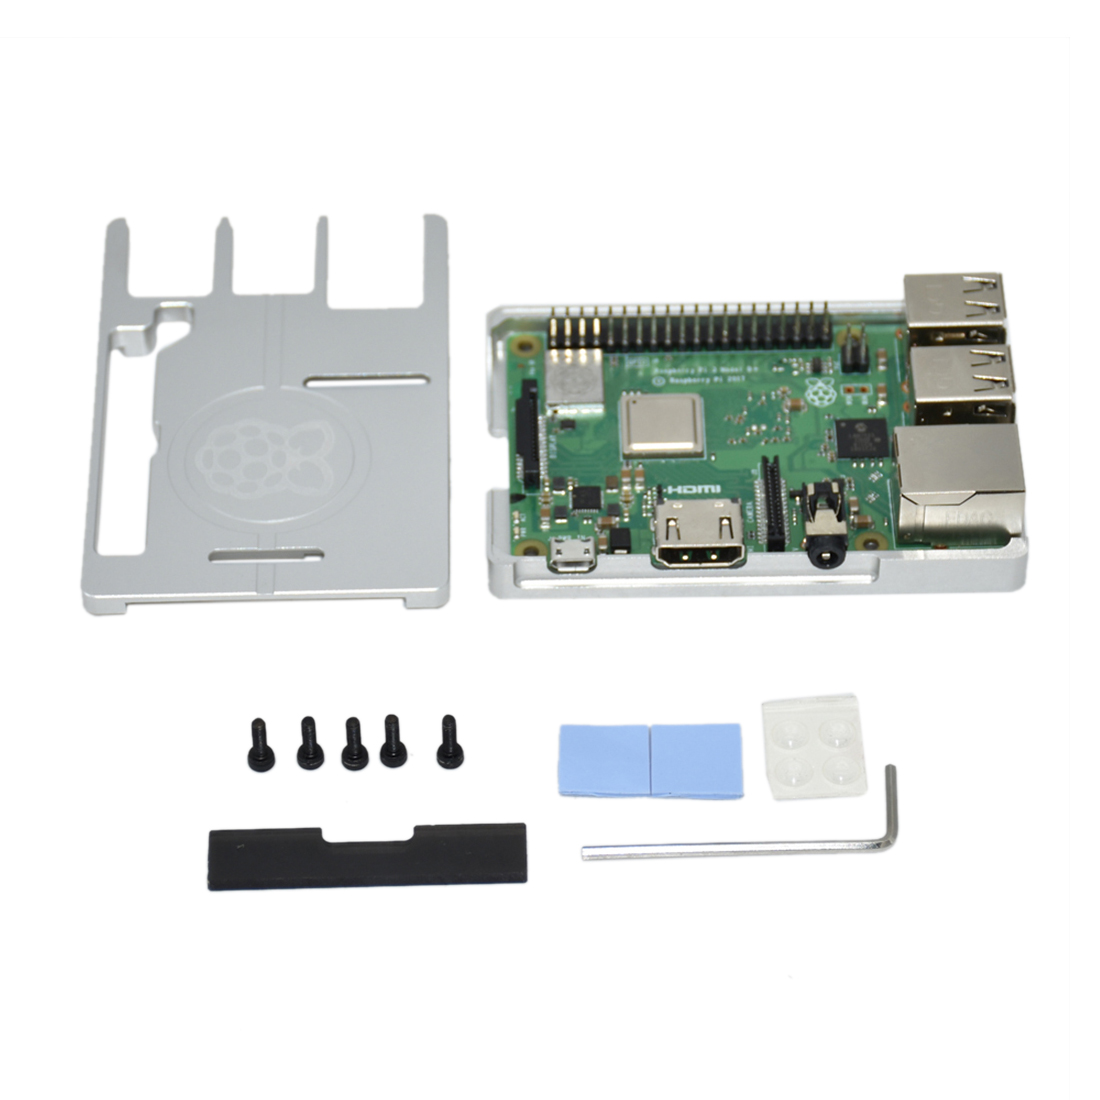 Ultra-Thin Aluminum Alloy CNC Box Portable Shell For Raspberry Pi 3B+  Programmable Toys Accessories - Silver